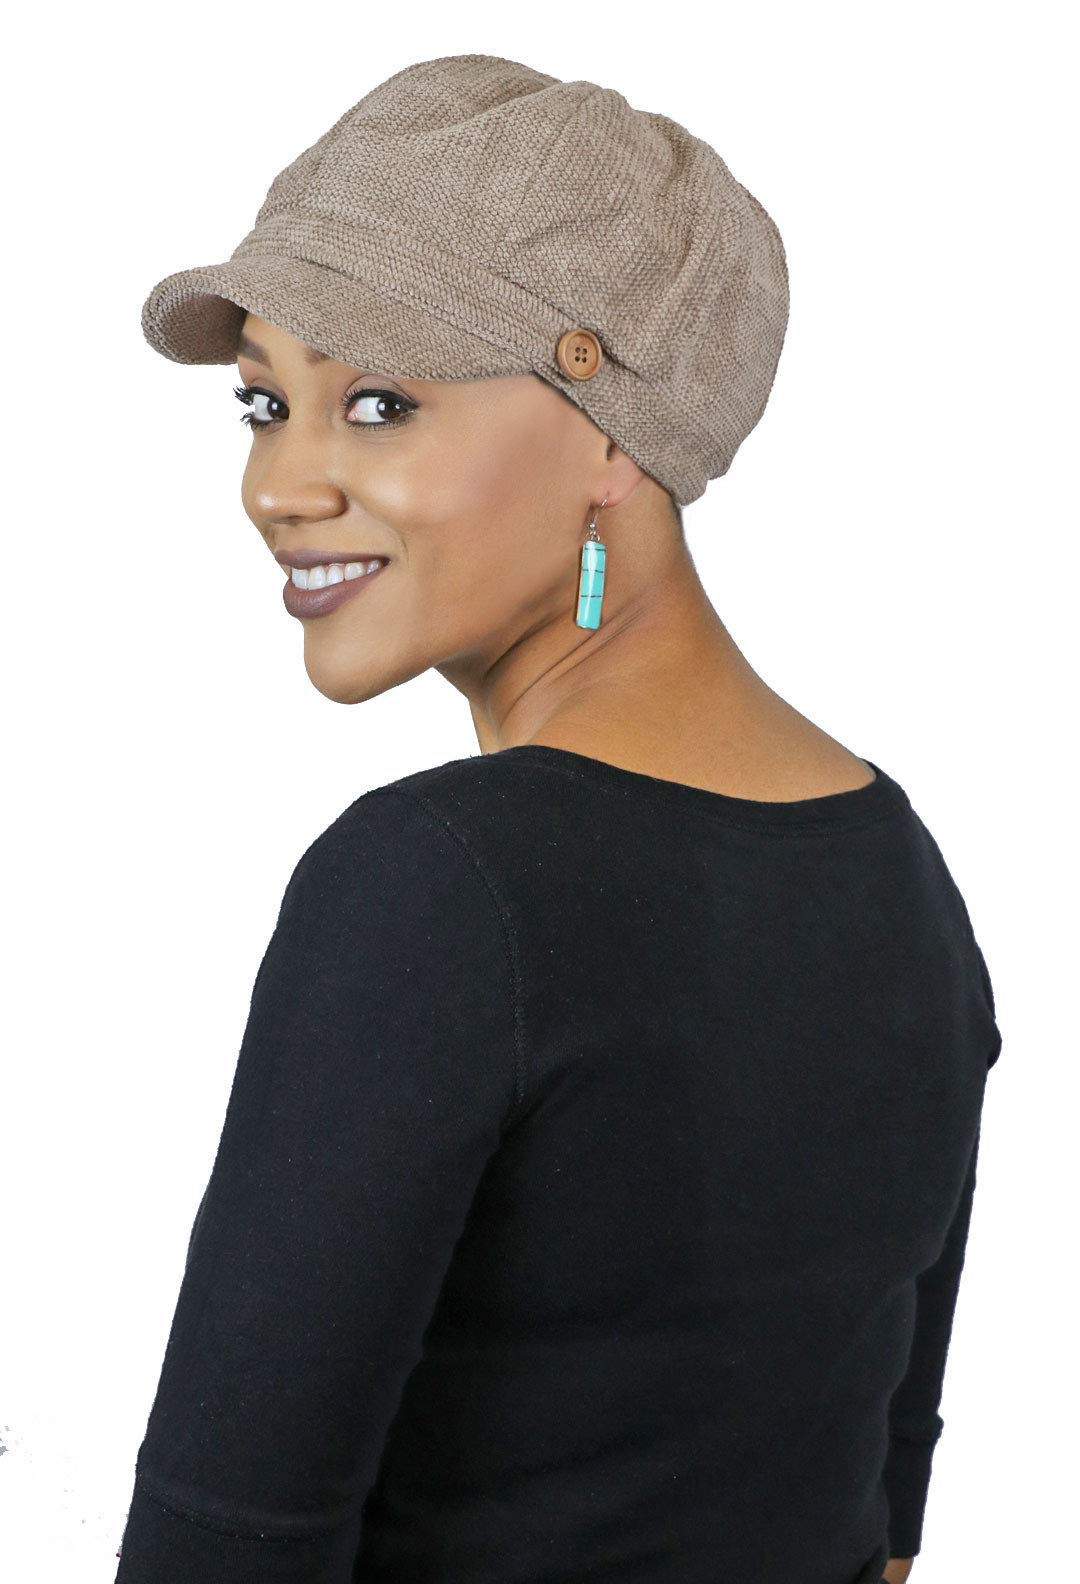 Newsboy Cap for Women Cancer Headwear Chemo Hat Ladies Head Coverings Tweed Corduroy (Taupe)